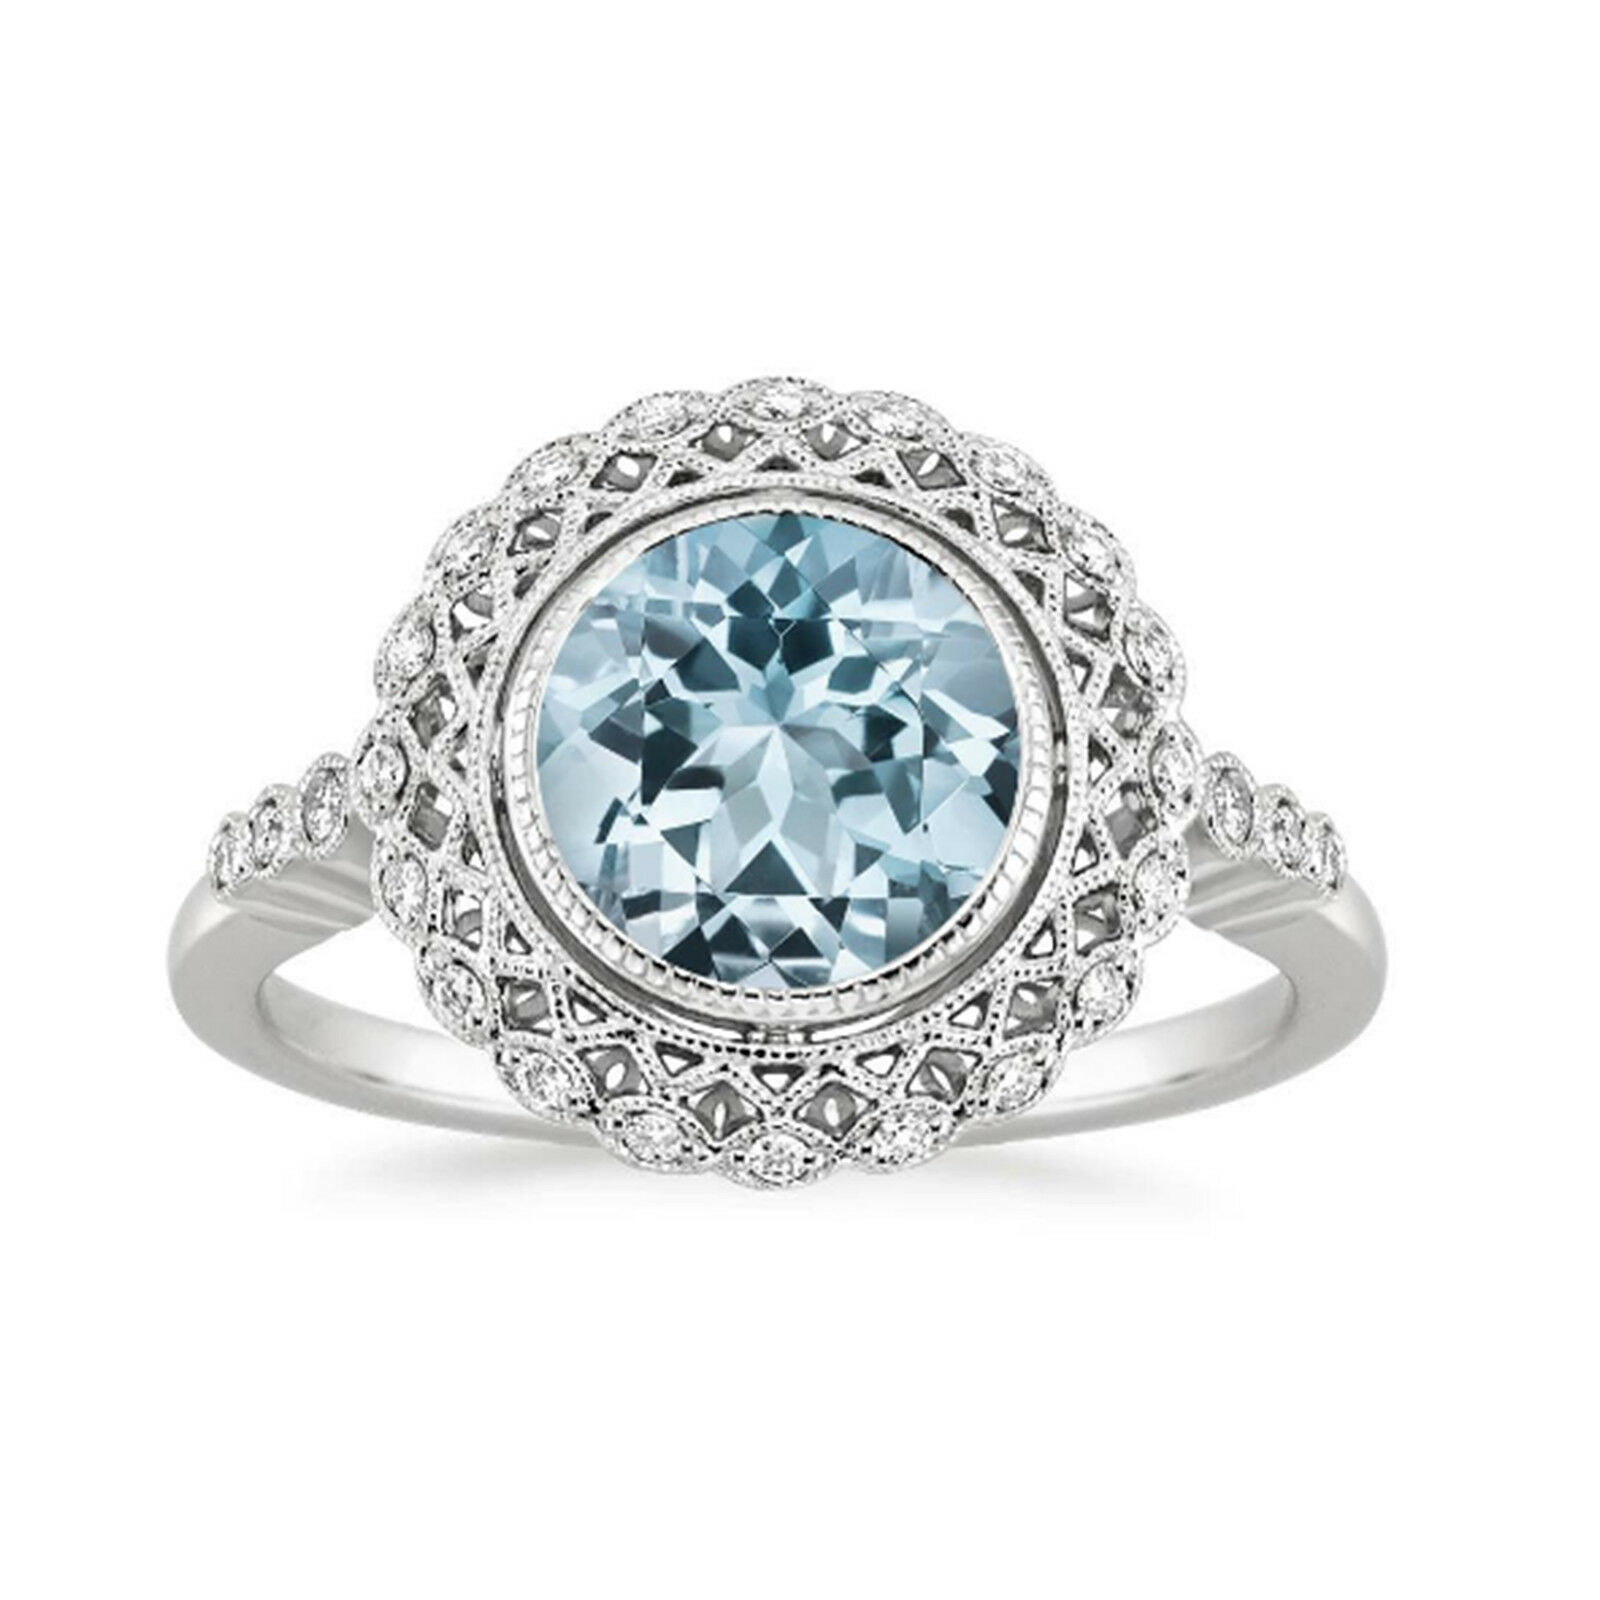 14K White gold Aquamarine Rings 1.55 Ct Genuine Diamond Engagement Ring Size 7 8